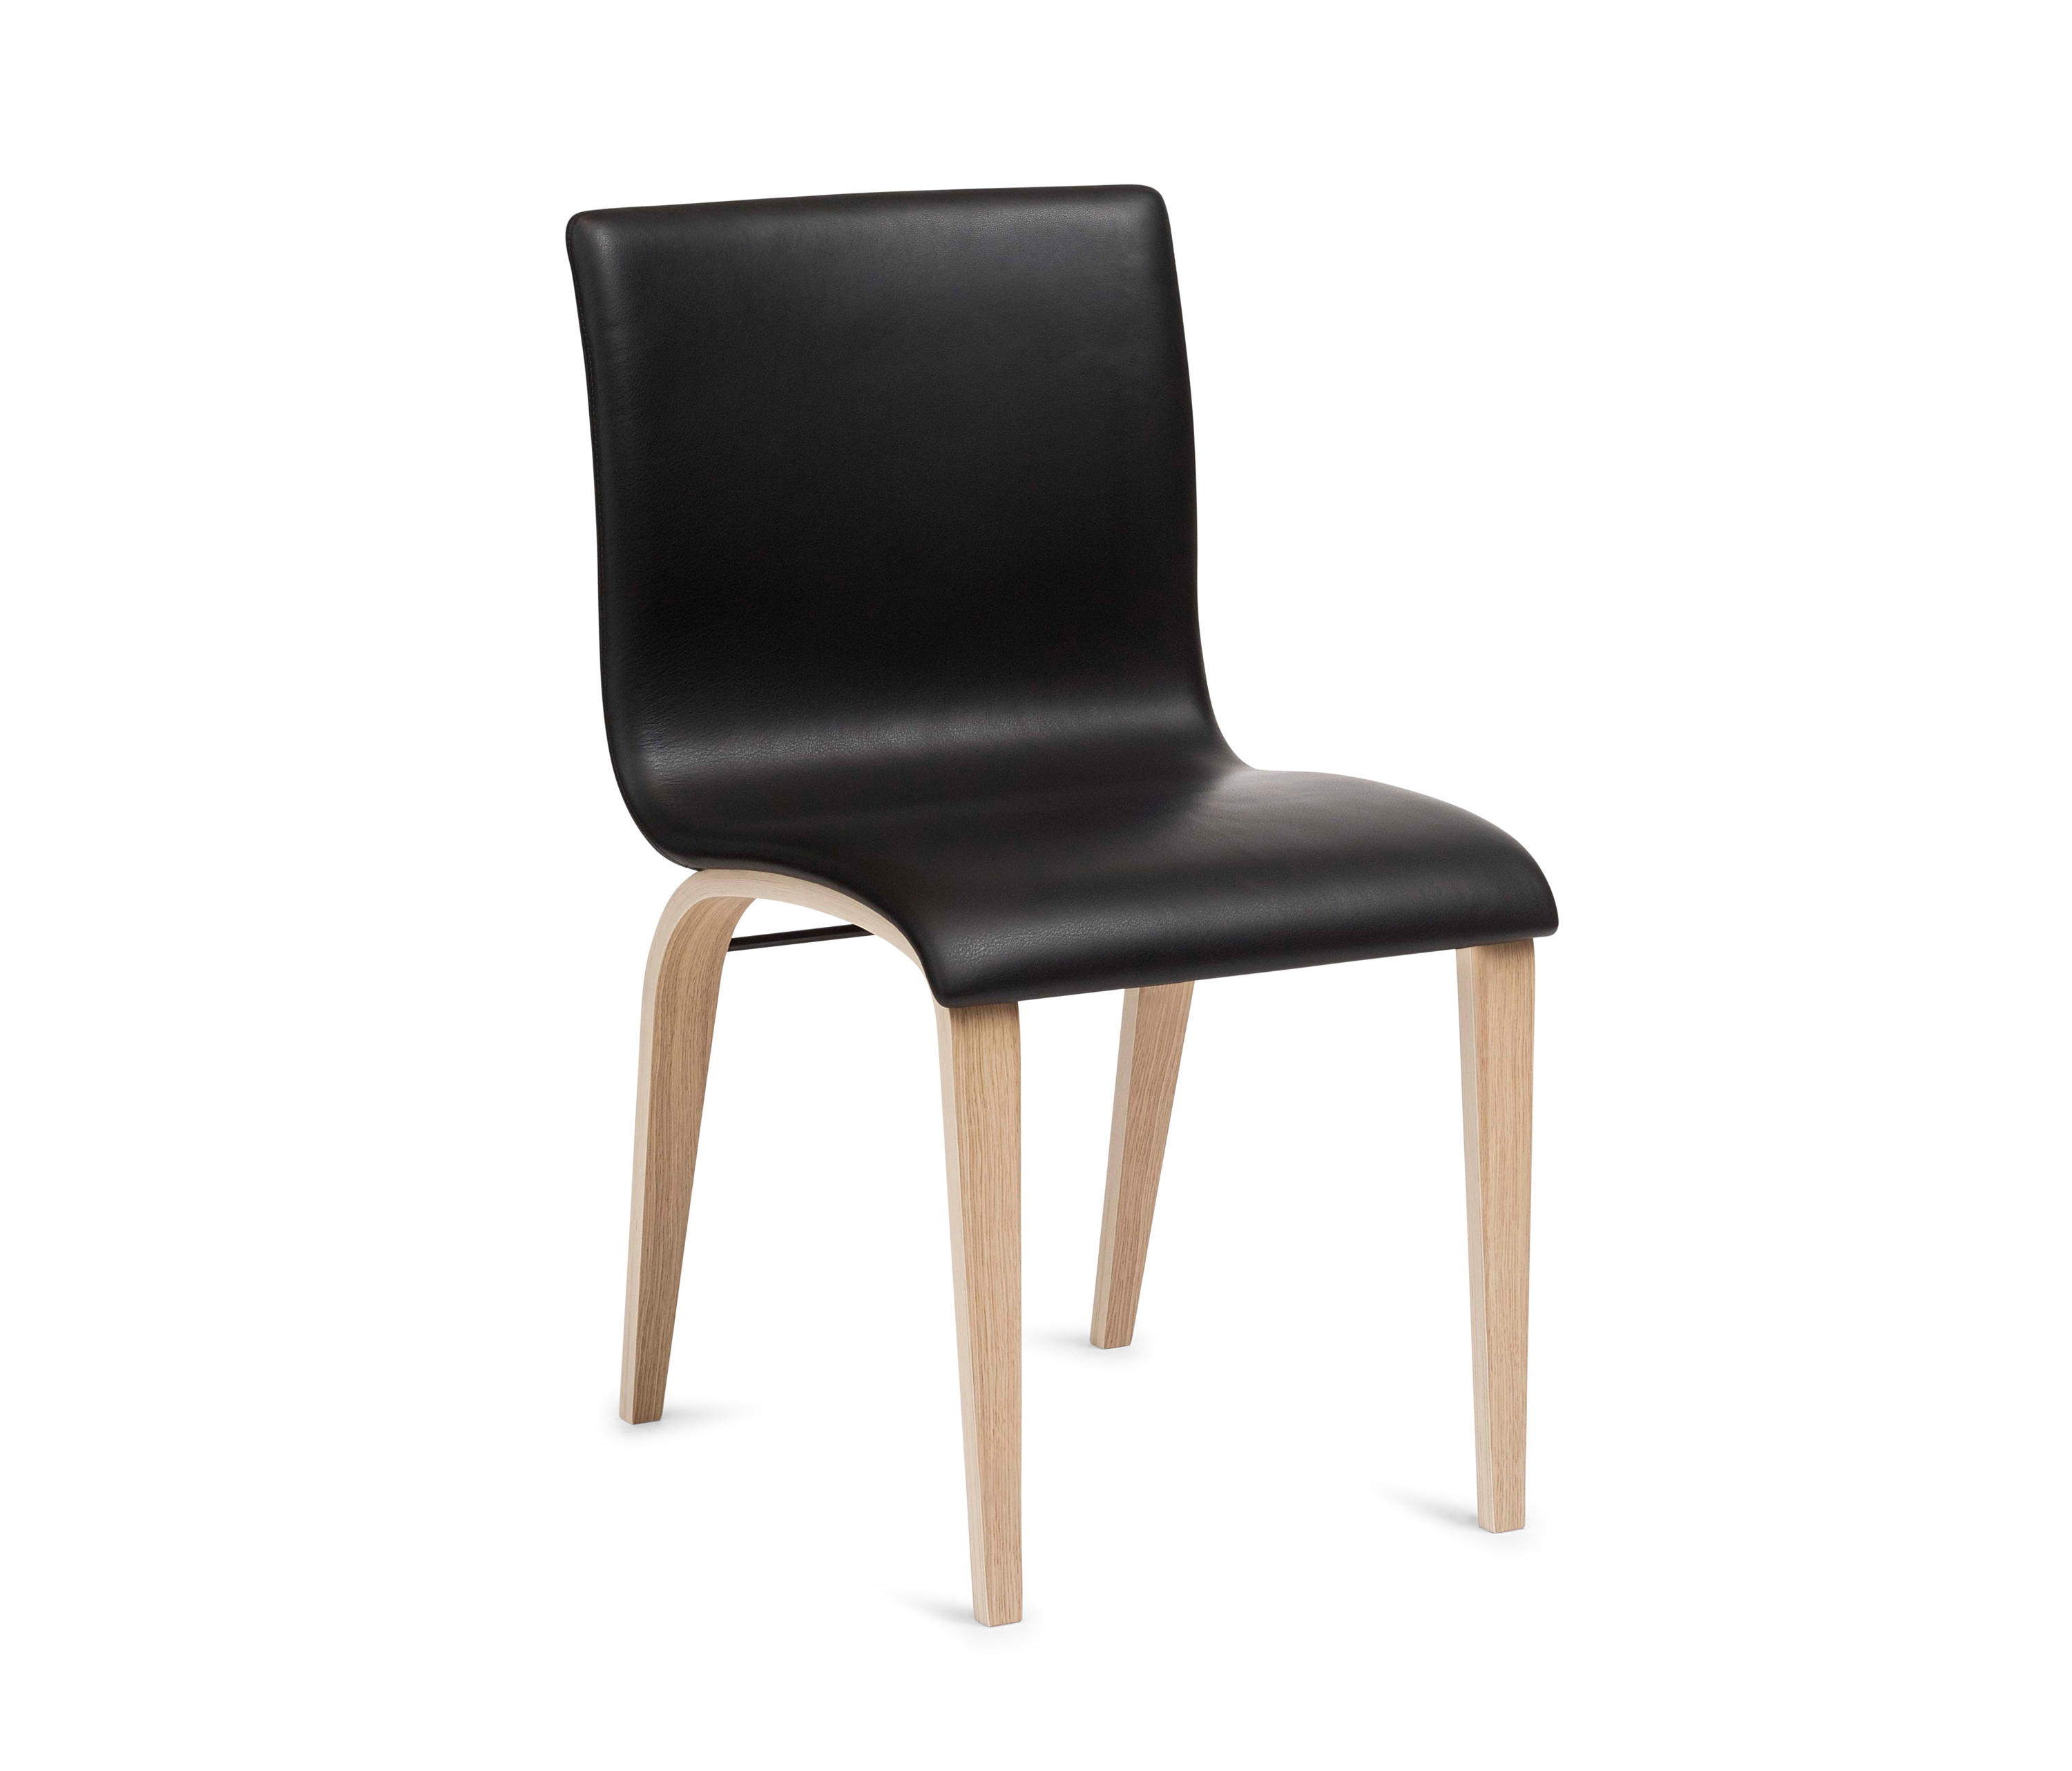 Copenhagen | chair one by Erik Bagger Furniture | Chairs ...  sc 1 st  Architonic & COPENHAGEN | CHAIR ONE - Chairs from Erik Bagger Furniture | Architonic